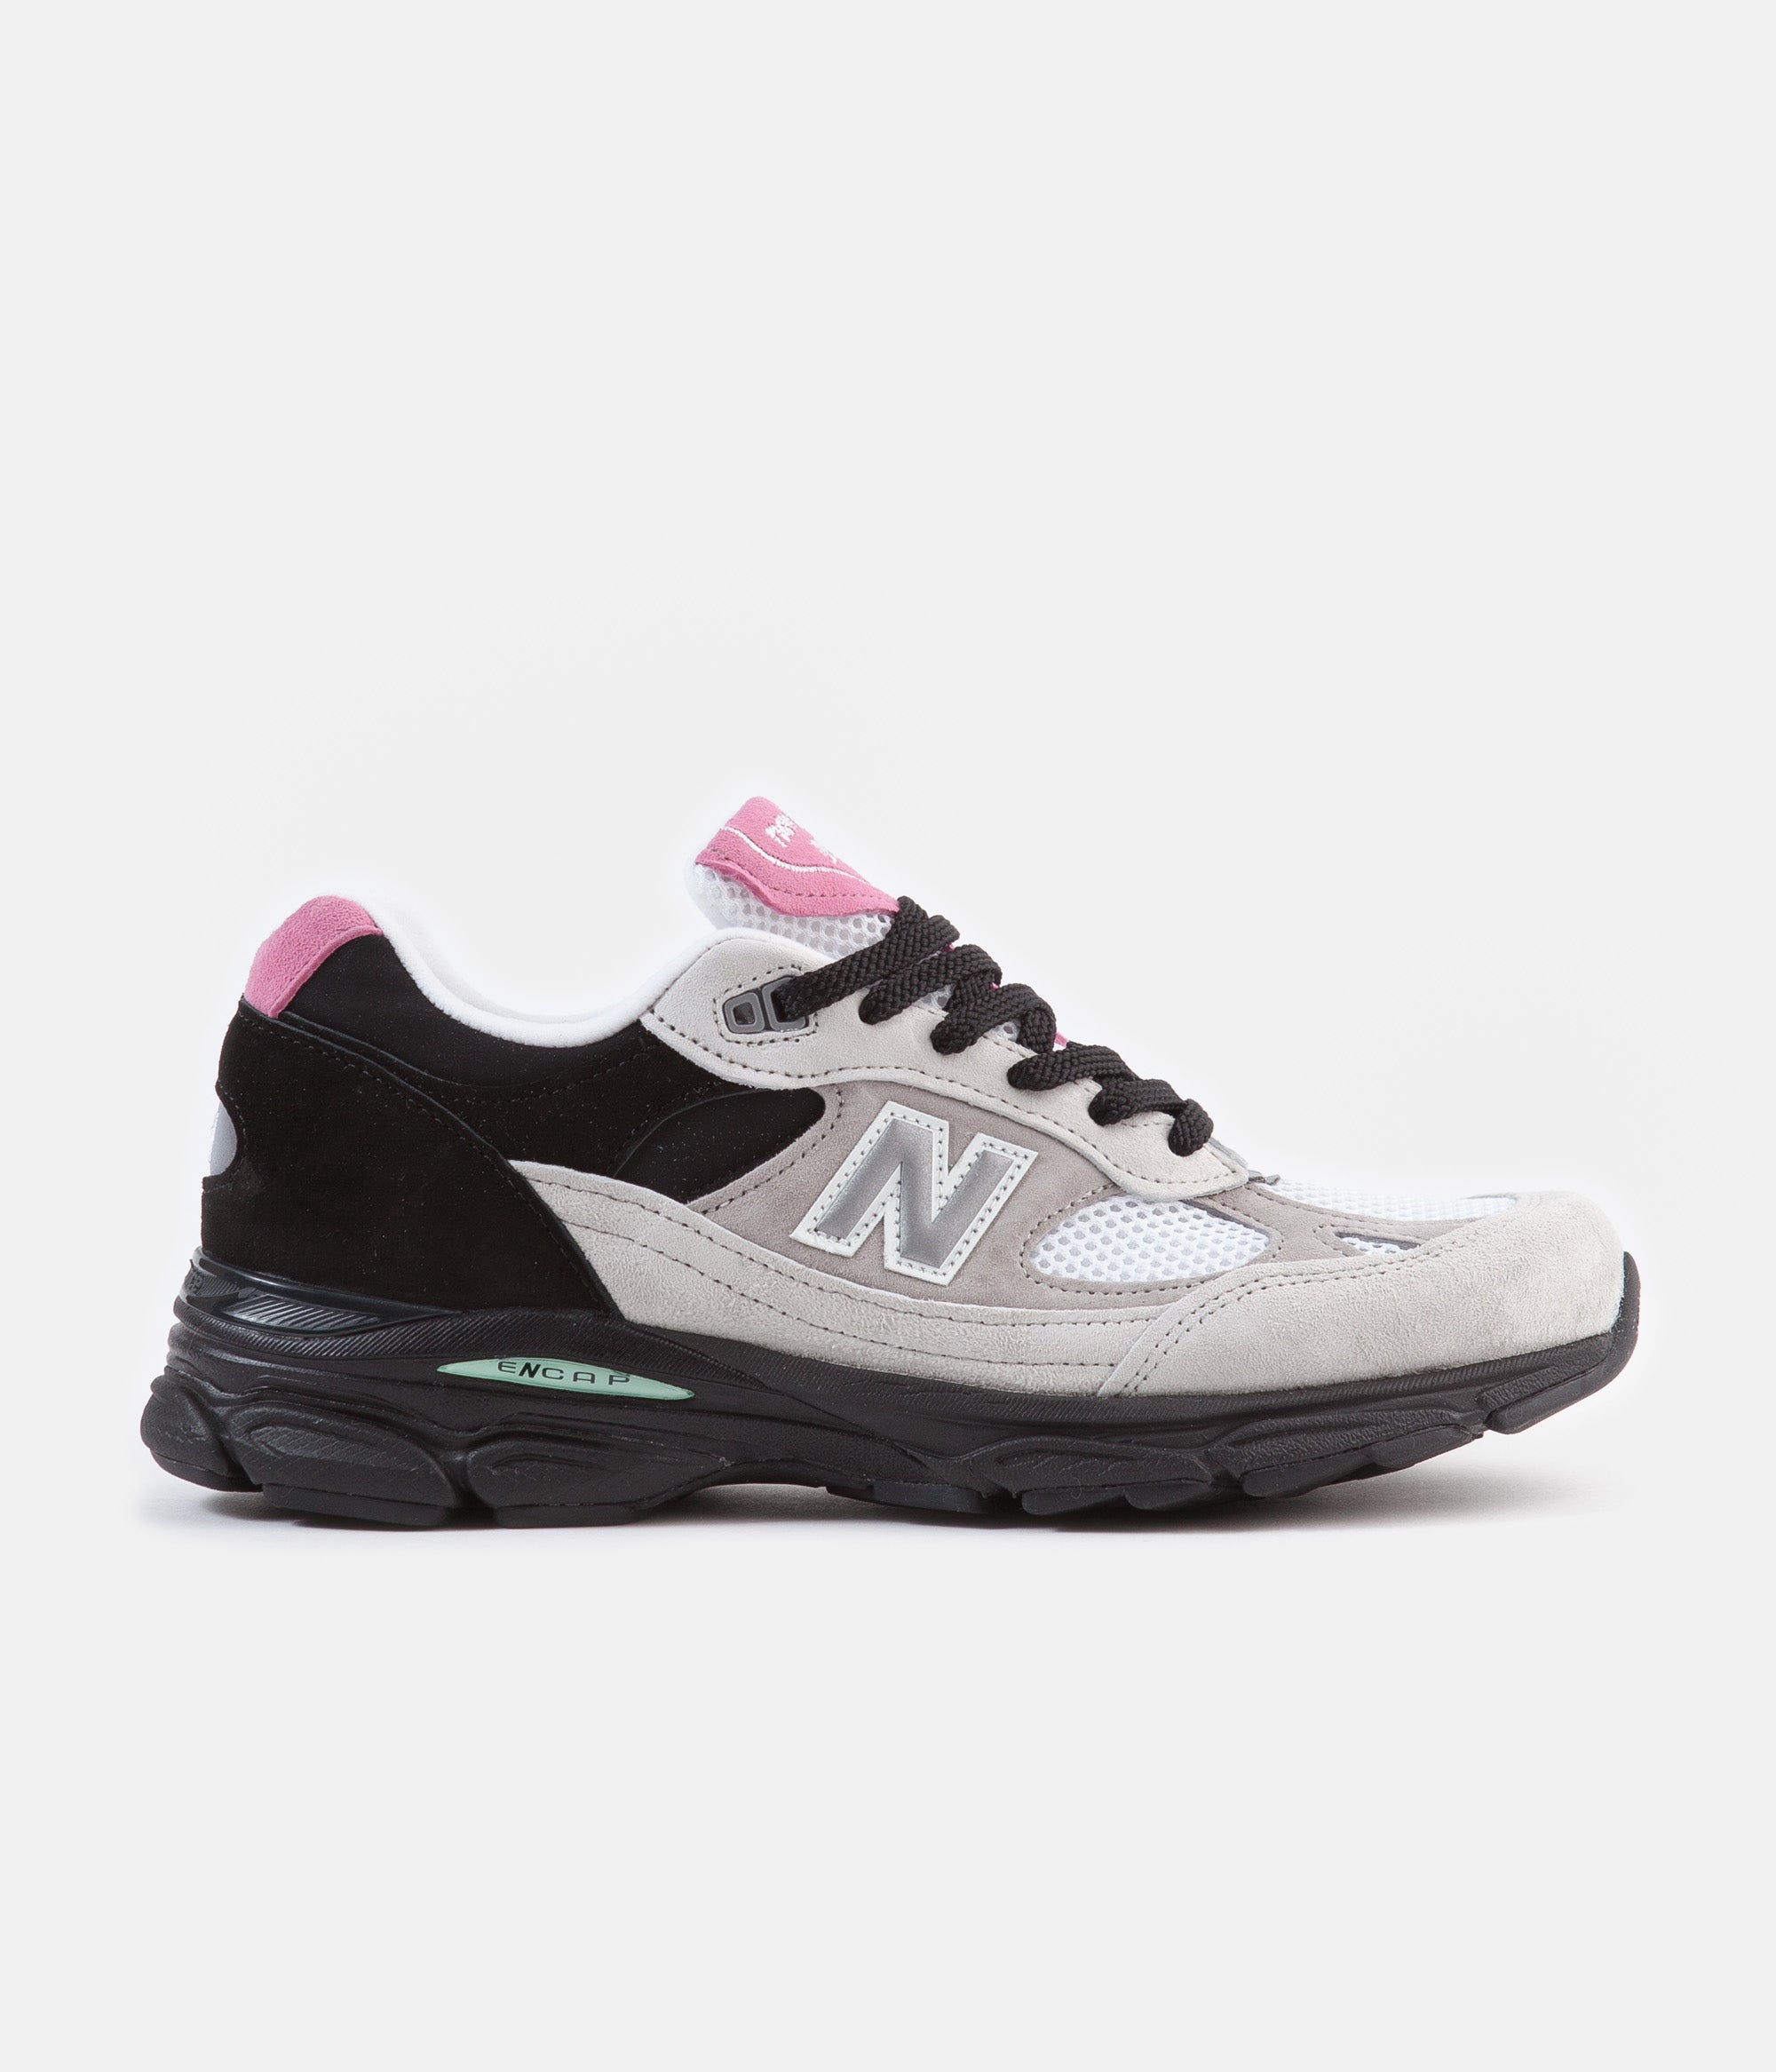 1b6a324efe57c New Balance 991.9 Made In UK Shoes - White / Black / Grey   Always ...